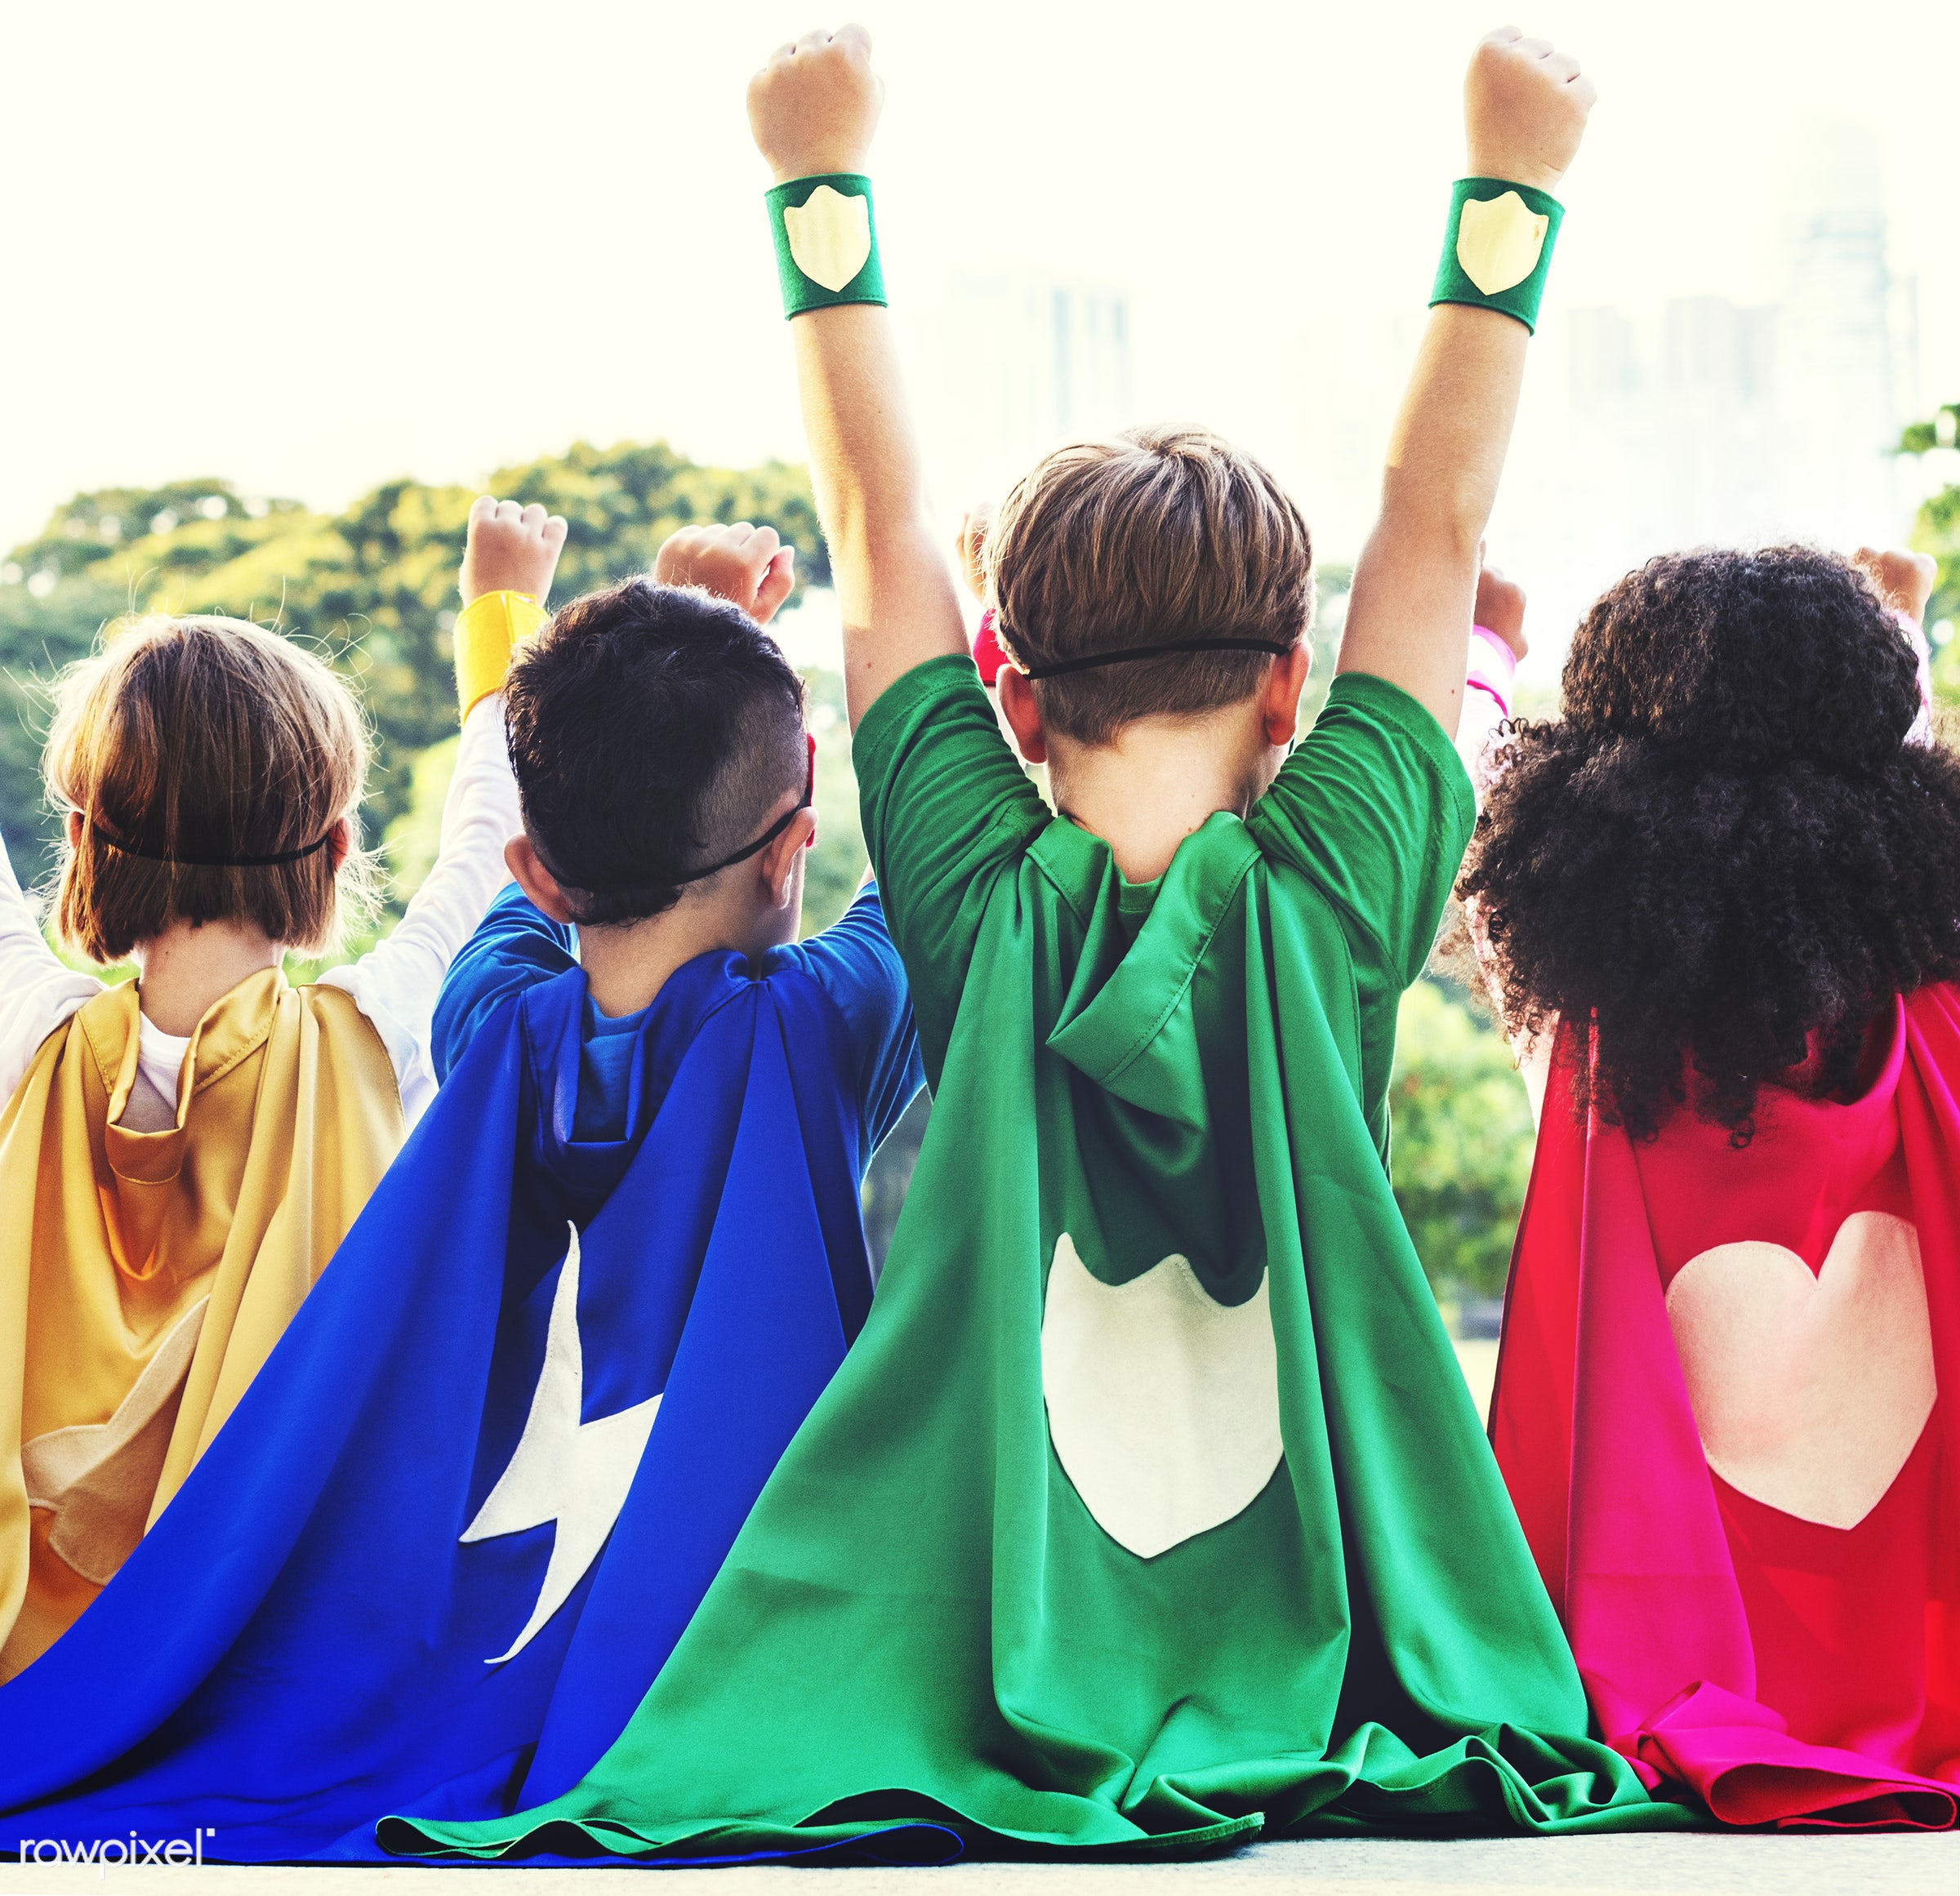 superhero, adorable, african descent, arms raised, asian ethnicity, aspiration, boys, cape, cheerful, child, childhood,...